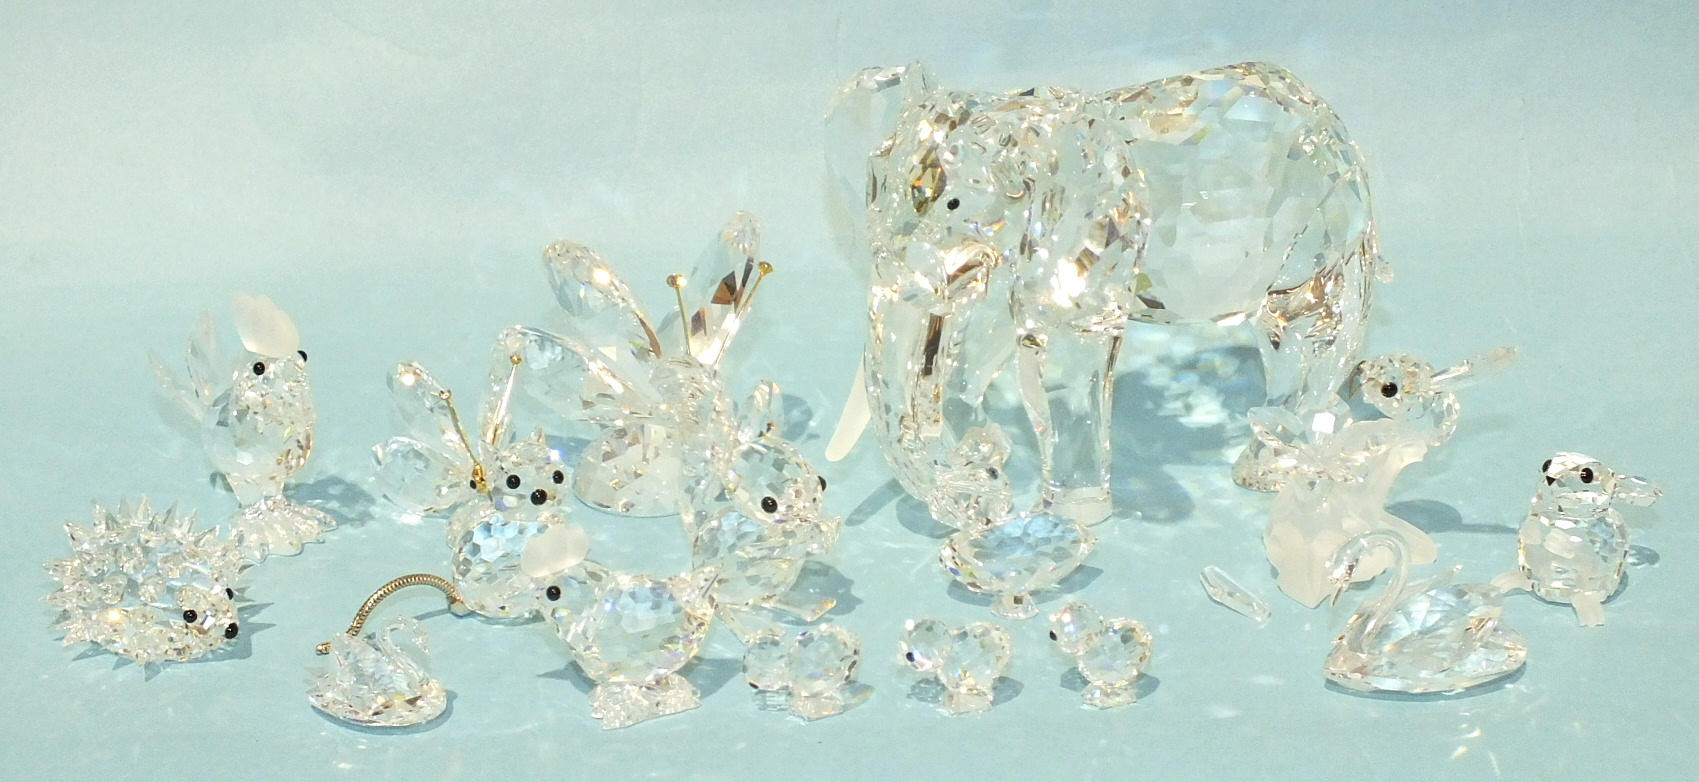 Lot 176 - A Swarovski crystal glass elephant, 8.5cm high, (one tusk missing) and a collection of fifteen small